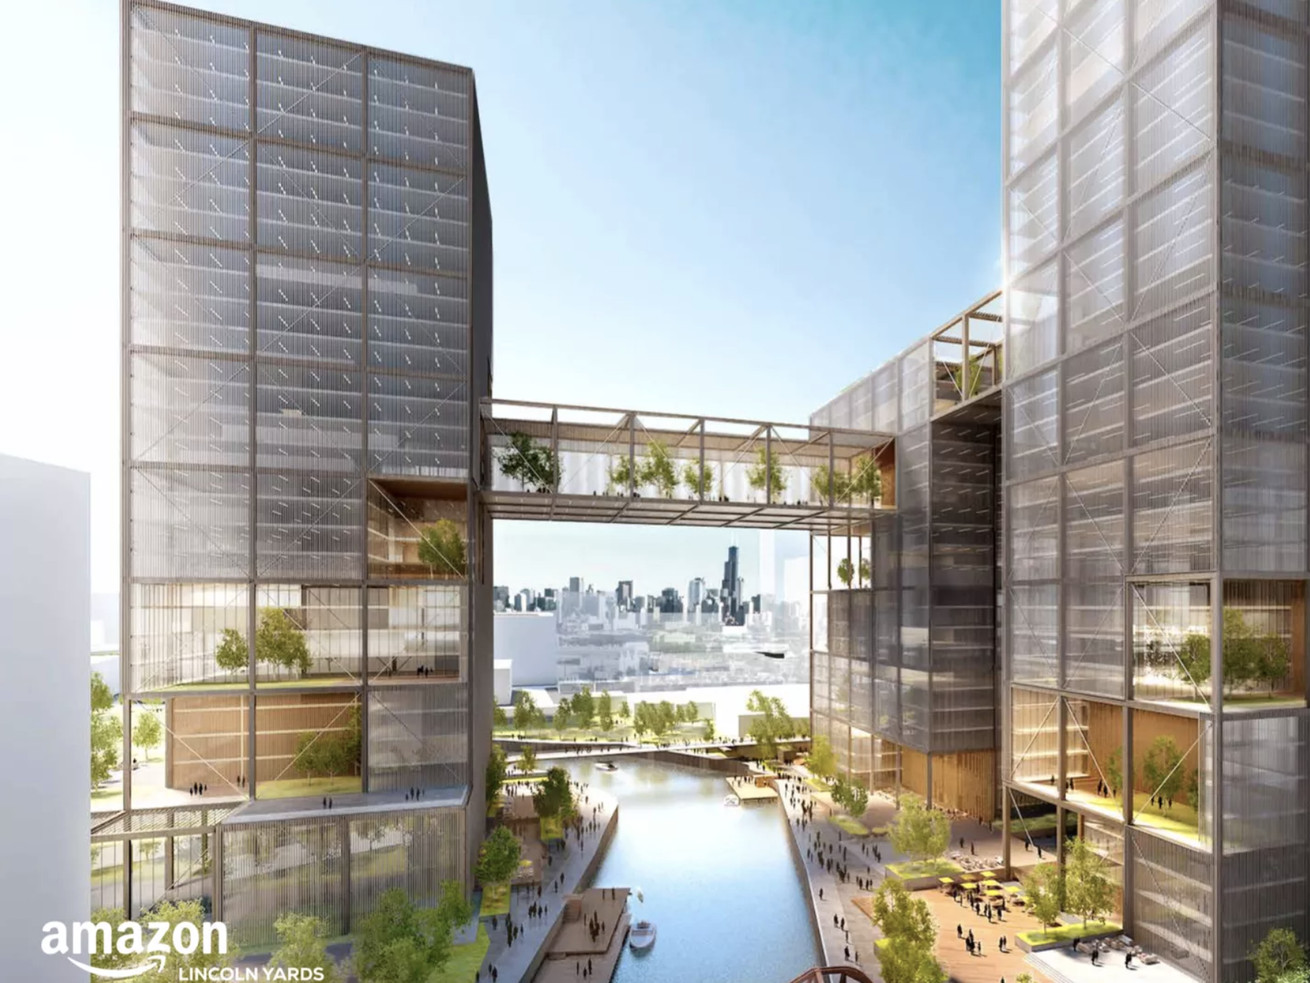 A conceptual rendering of Amazon HQ2 at Chicago's Lincoln Yards development site.